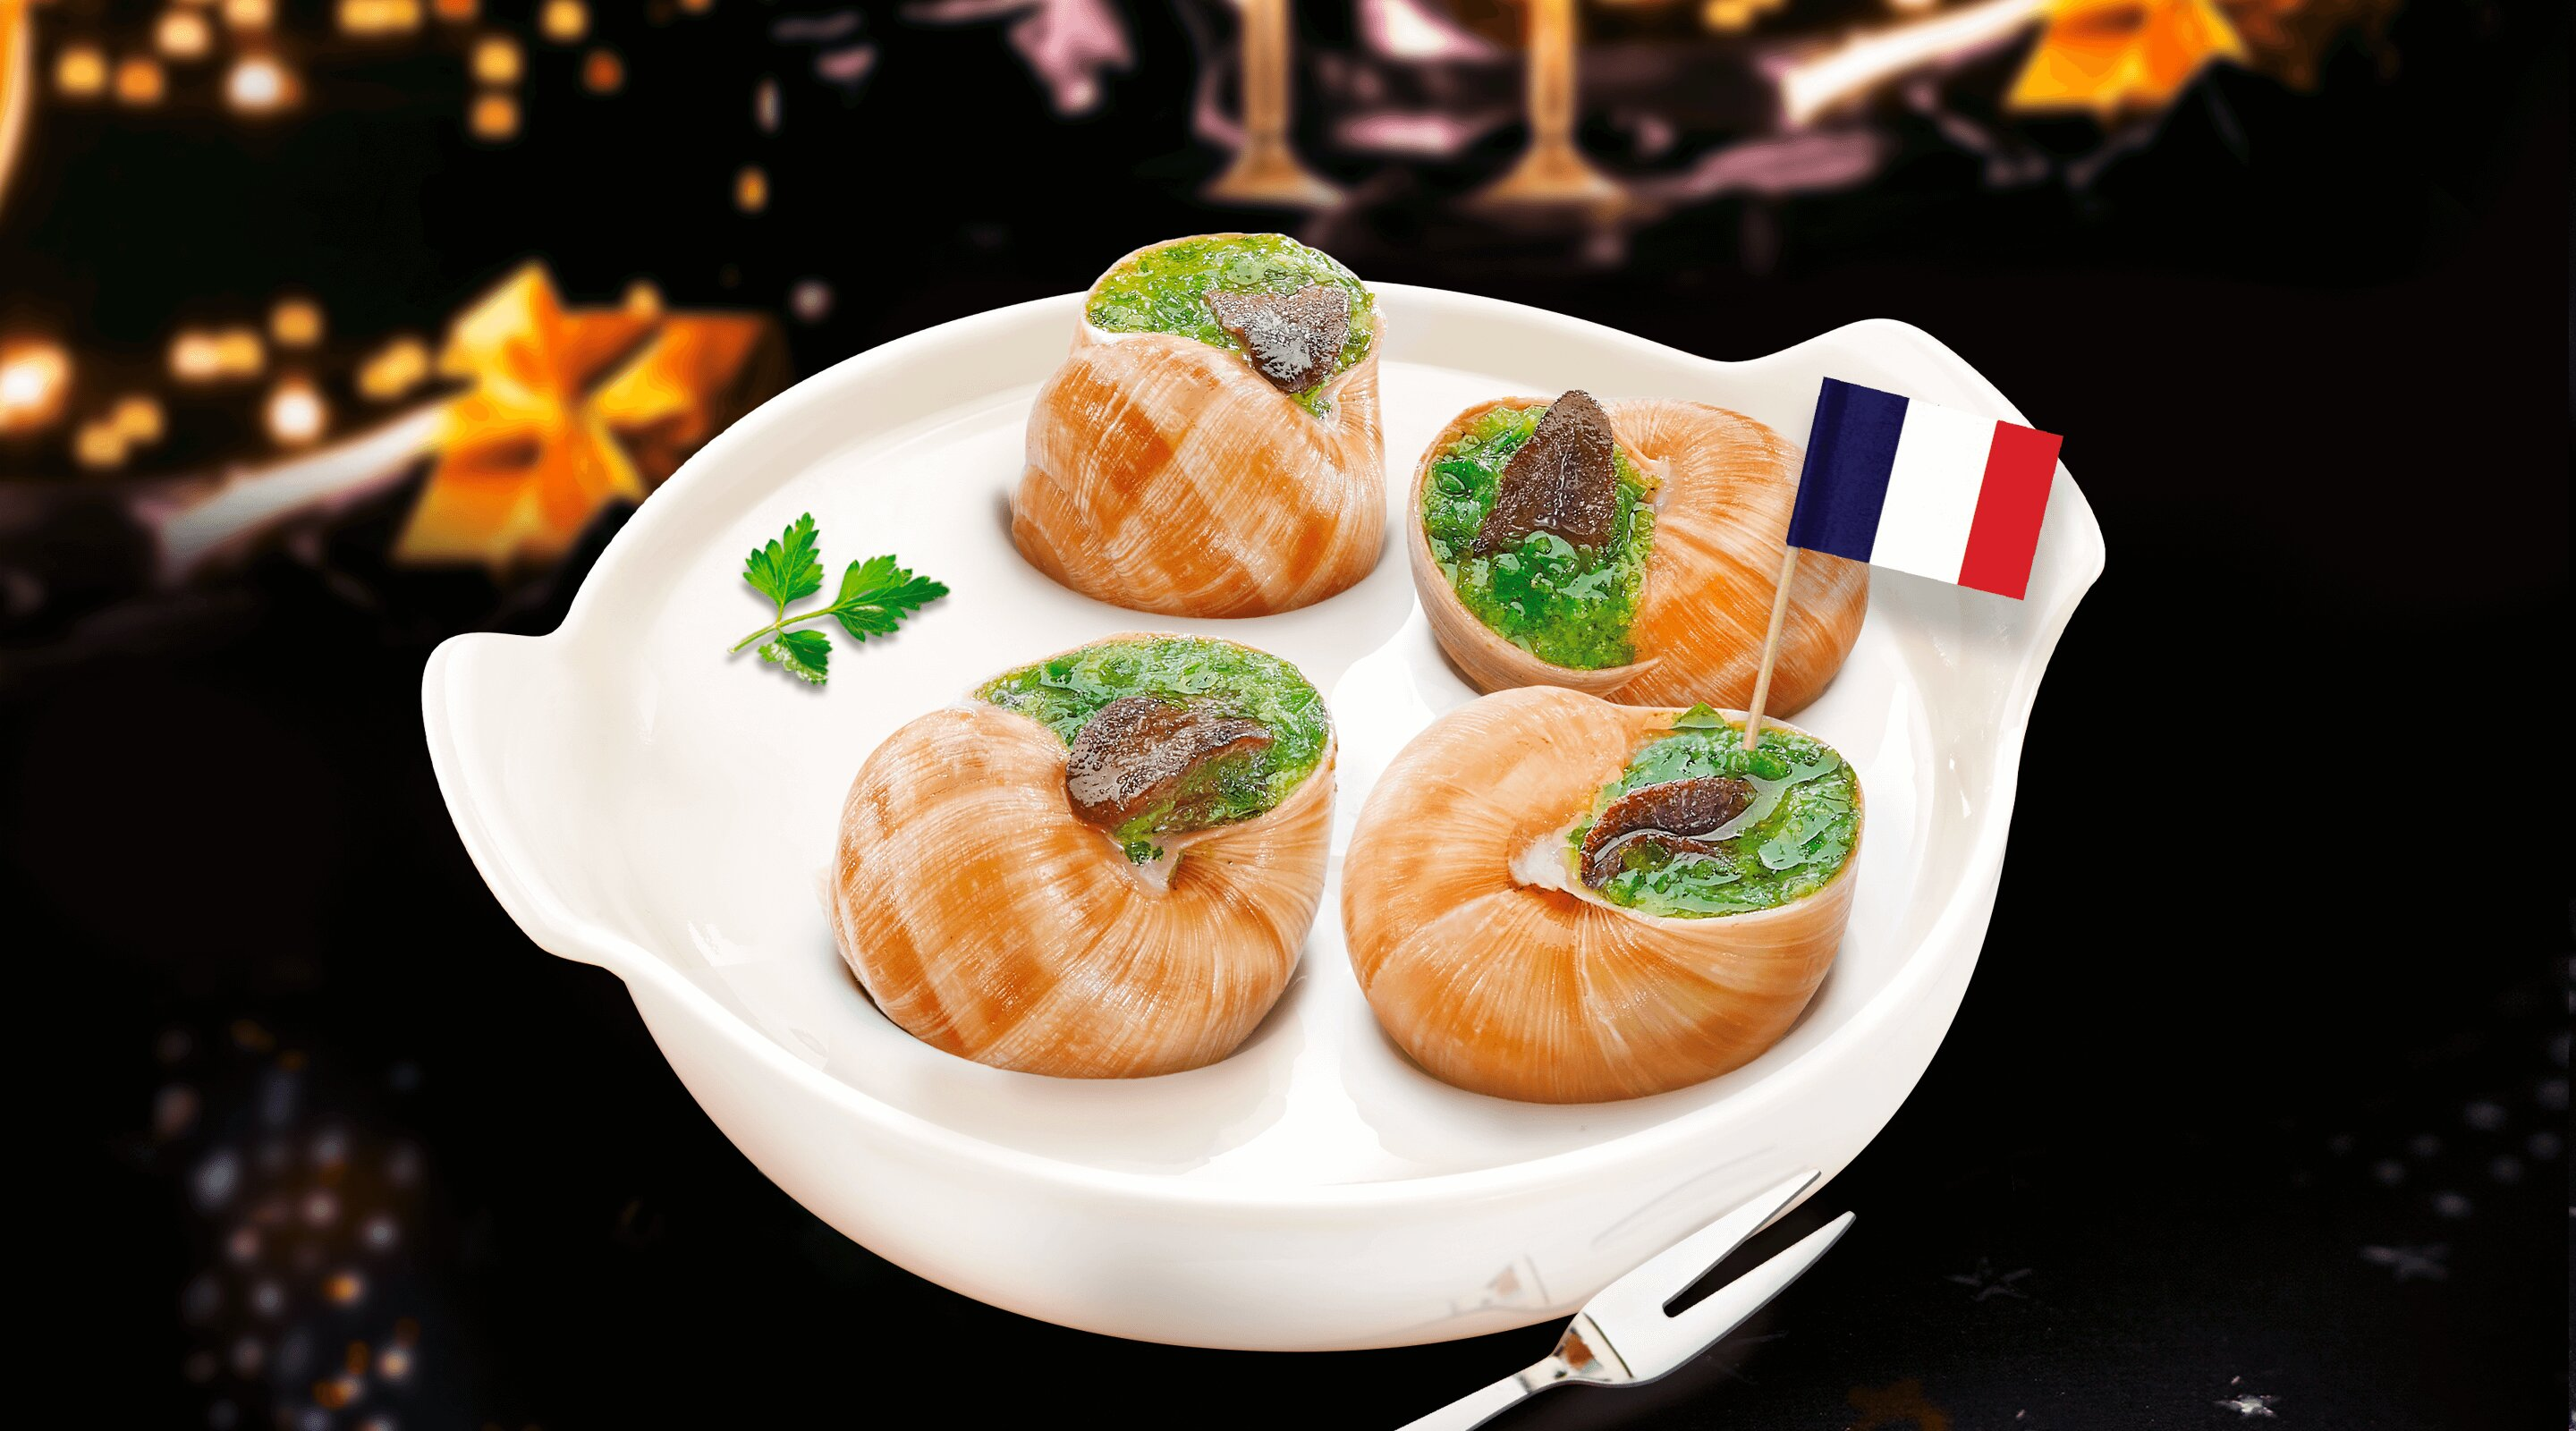 A white plate with 4 Burgundy escargots and a French flag and the background is festive